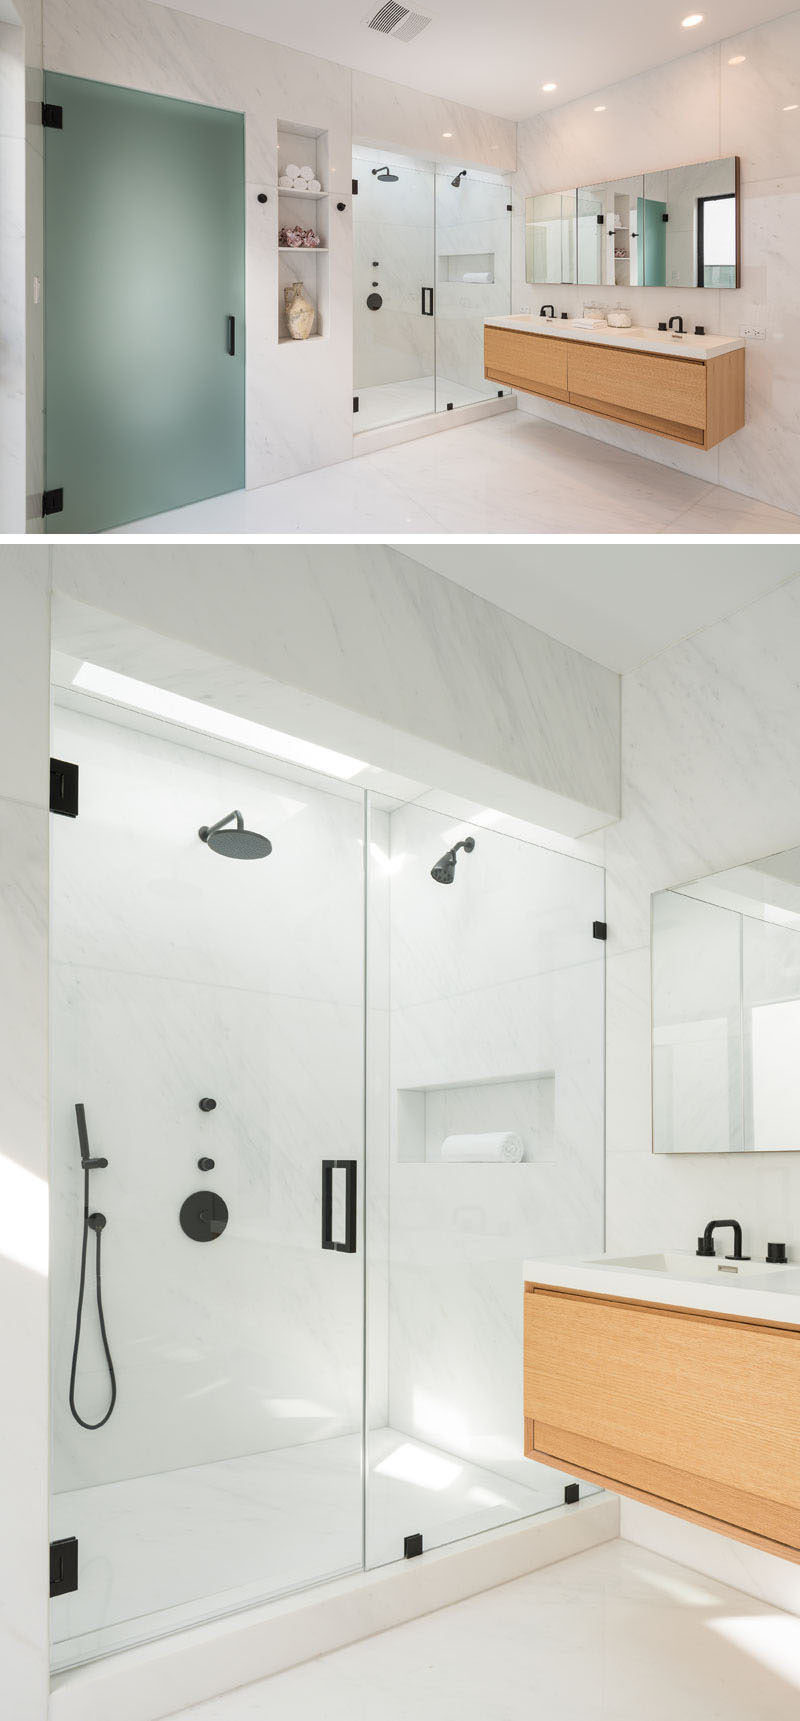 In this modern ensuite bathroom is a toilet hidden behind a frosted glass door, and a glass enclosed walk-in shower. #MasterBathroom #BathroomDesign